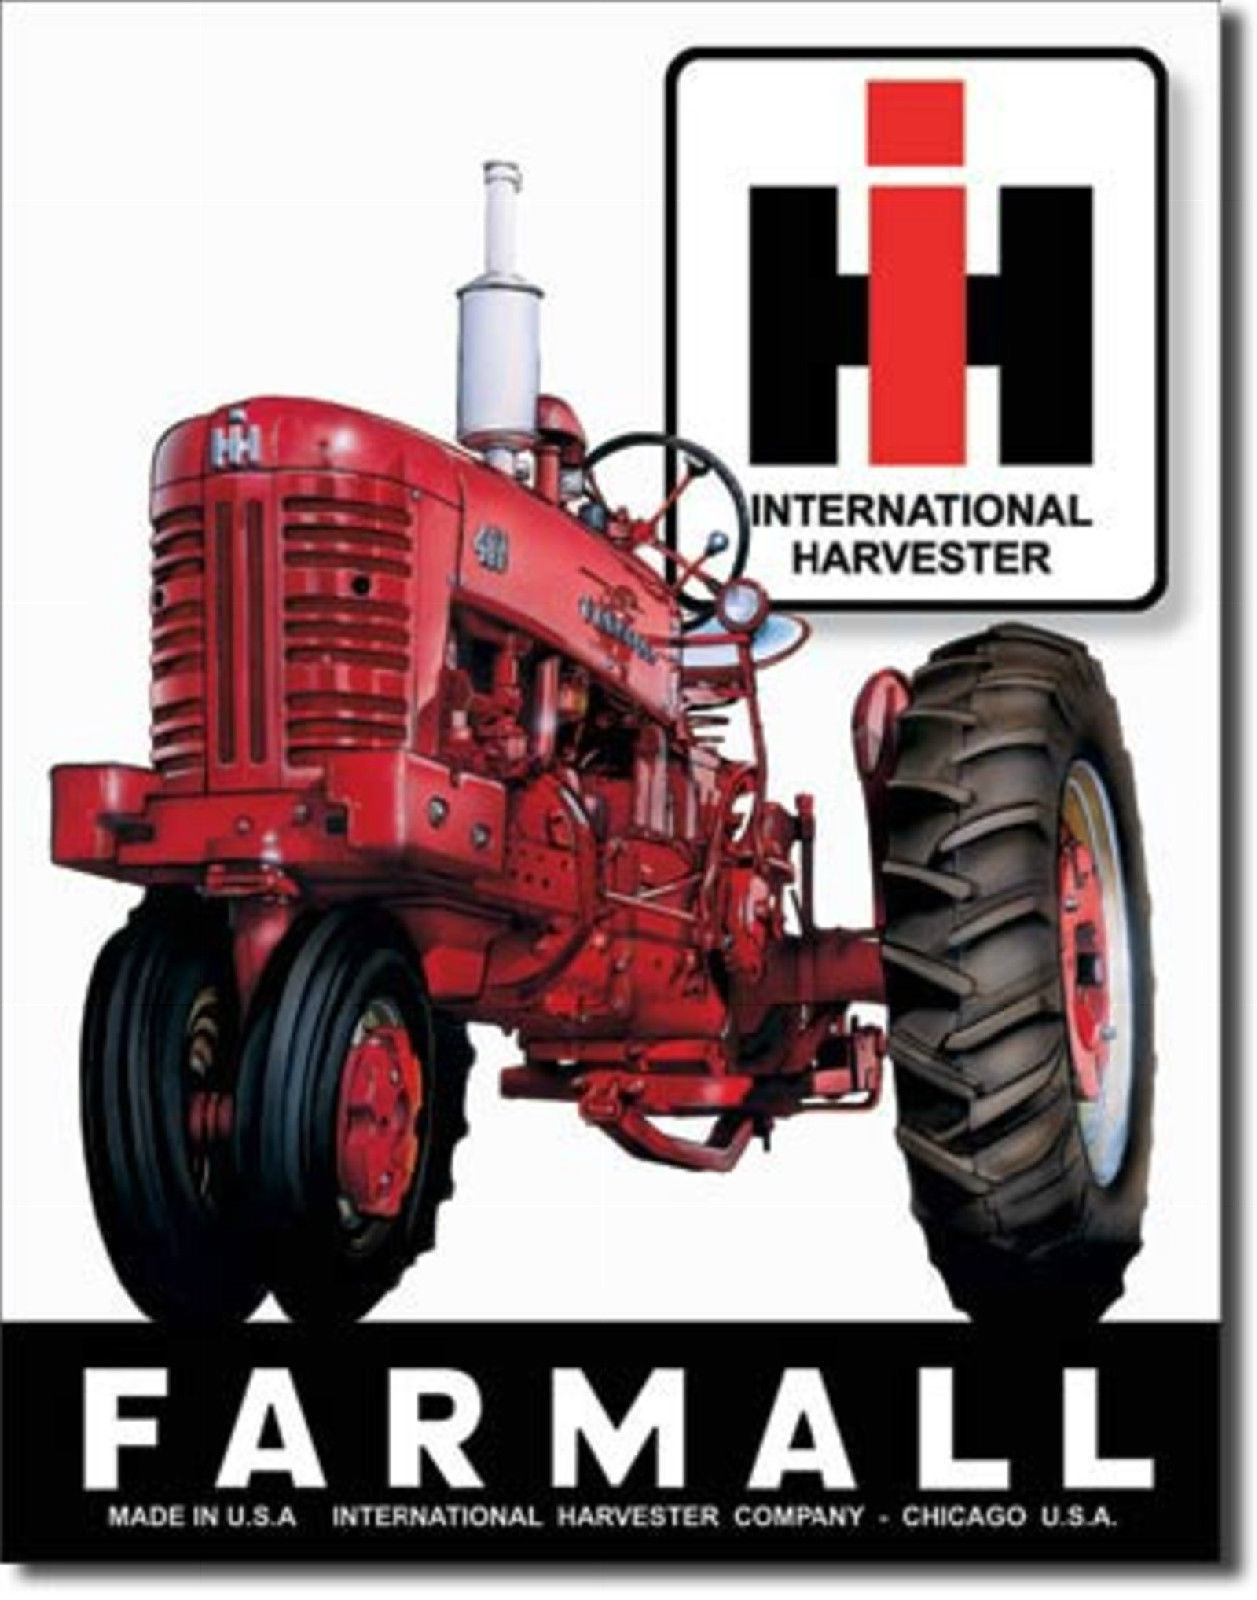 Farmall International Harvester Tractor  Metal Sign Tin New Vintage Style #839